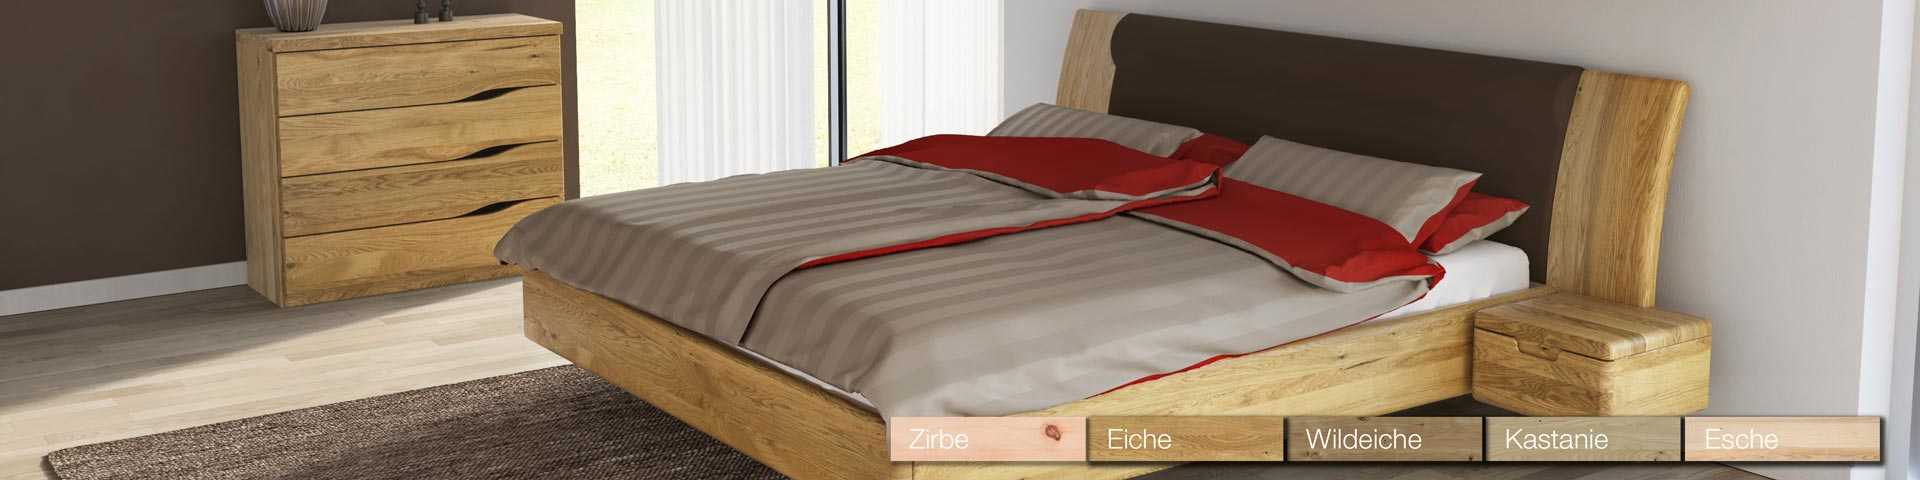 bettdecken 2x2m schlafzimmer ideen 15 qm m belkraft kleiderschr nke schiebet ren f r begehbare. Black Bedroom Furniture Sets. Home Design Ideas